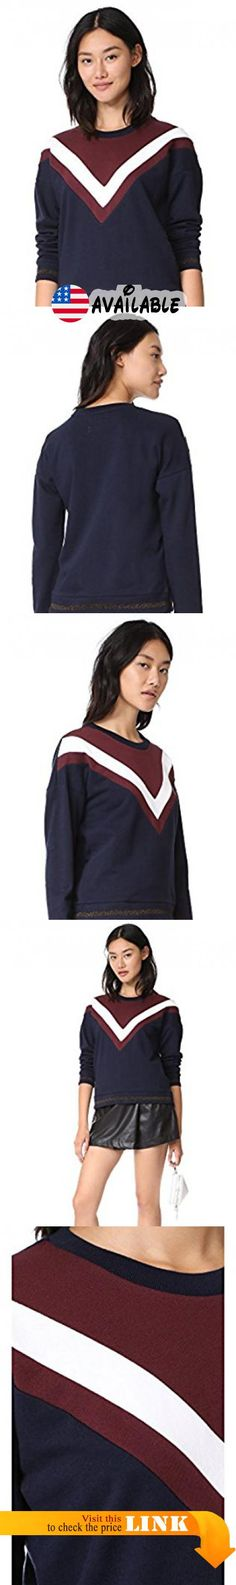 MKT Studio Women's Sienna Sweatshirt, Navy, Small. French terry. 100% cotton. Wash cold. Width 22.75in / 58cm, from shoulder #Apparel #SHIRT